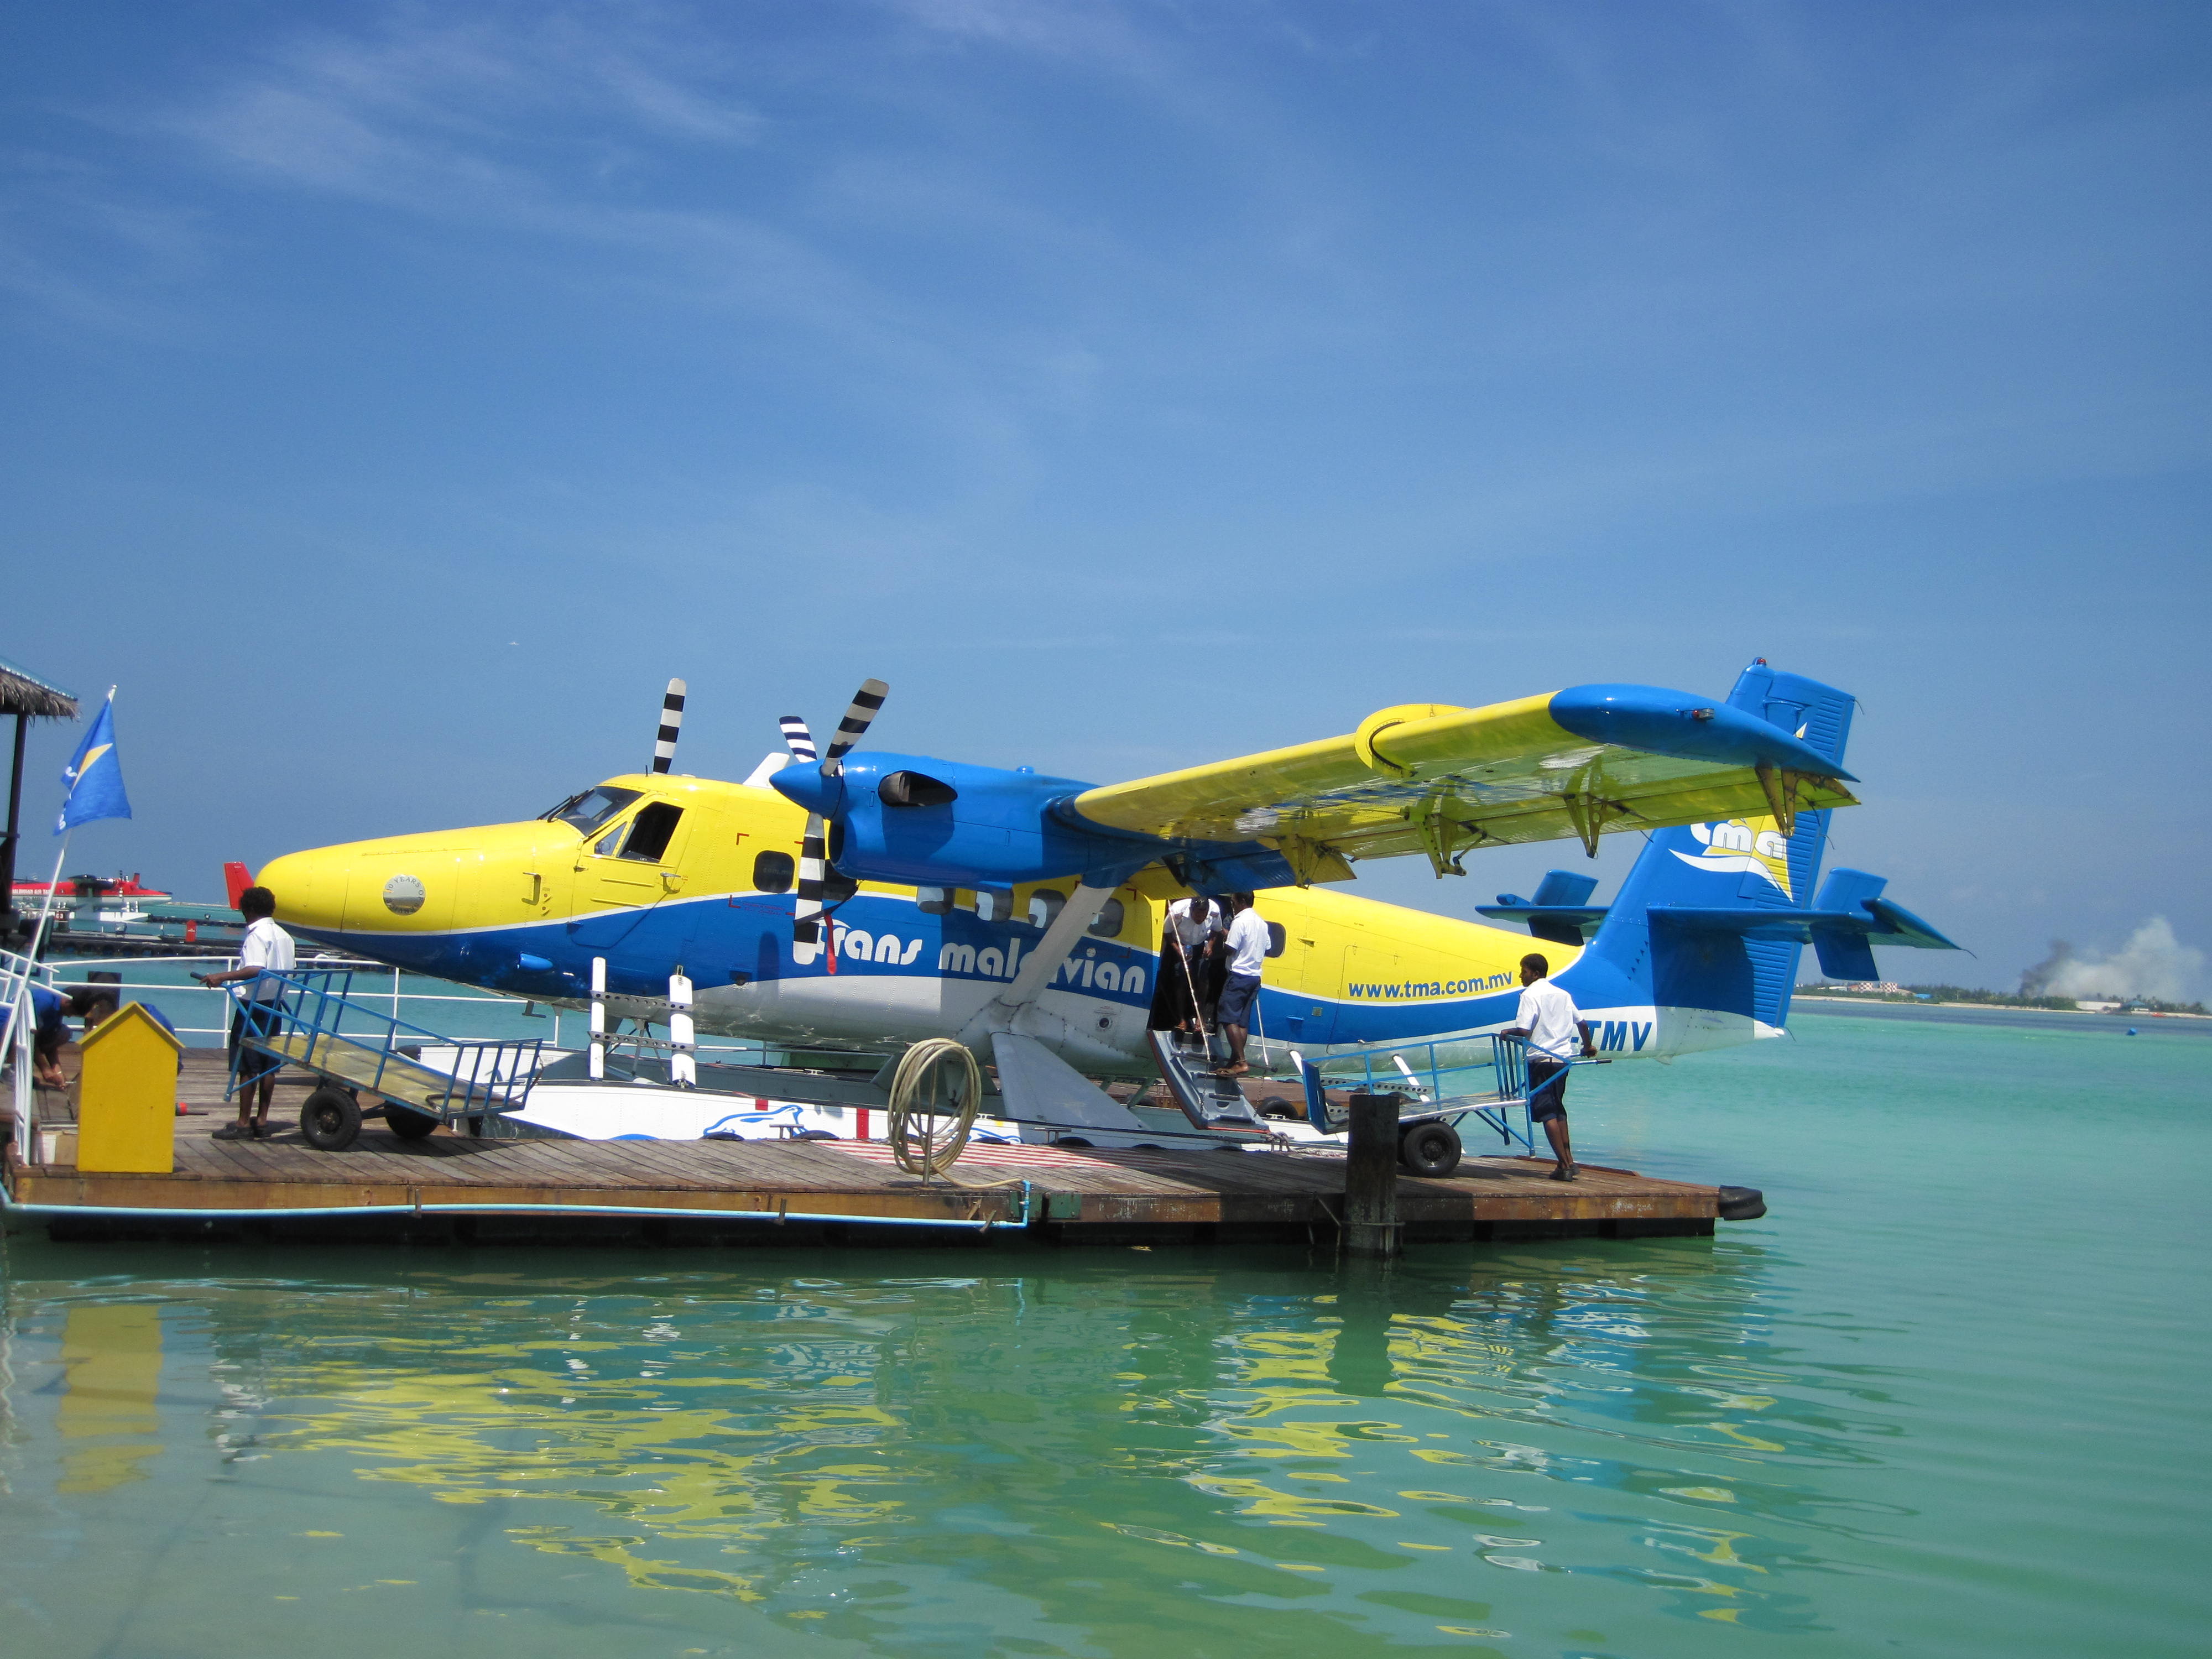 Maldives air taxi